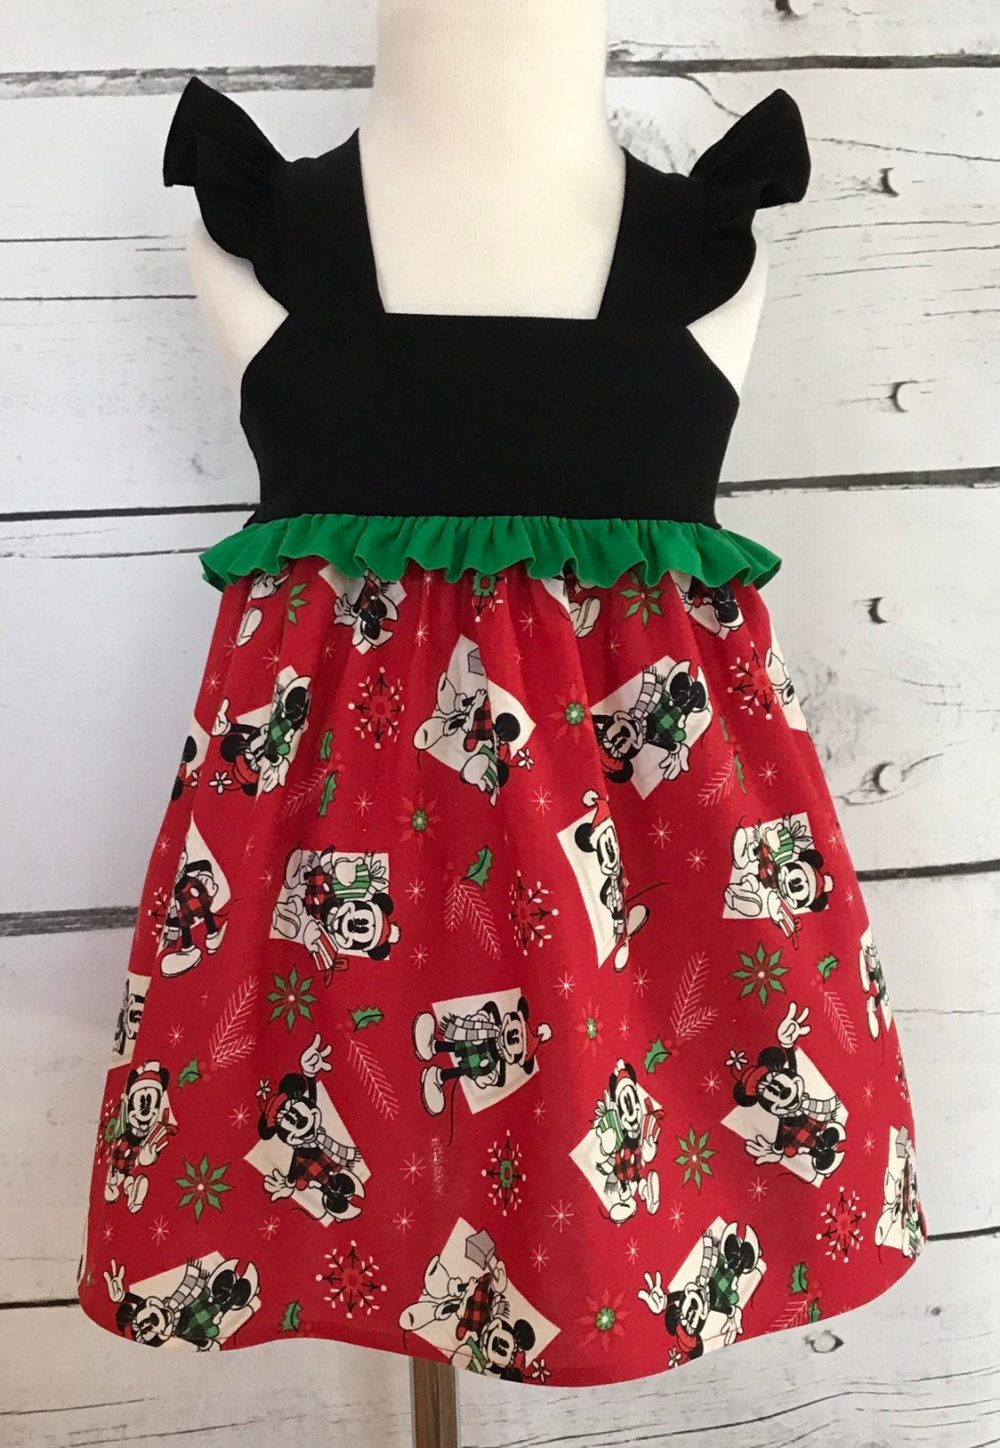 Mickey & Minnie Mouse Christmas Dress, Disney Style Baby Little Girls Holiday Party Toddler Dress